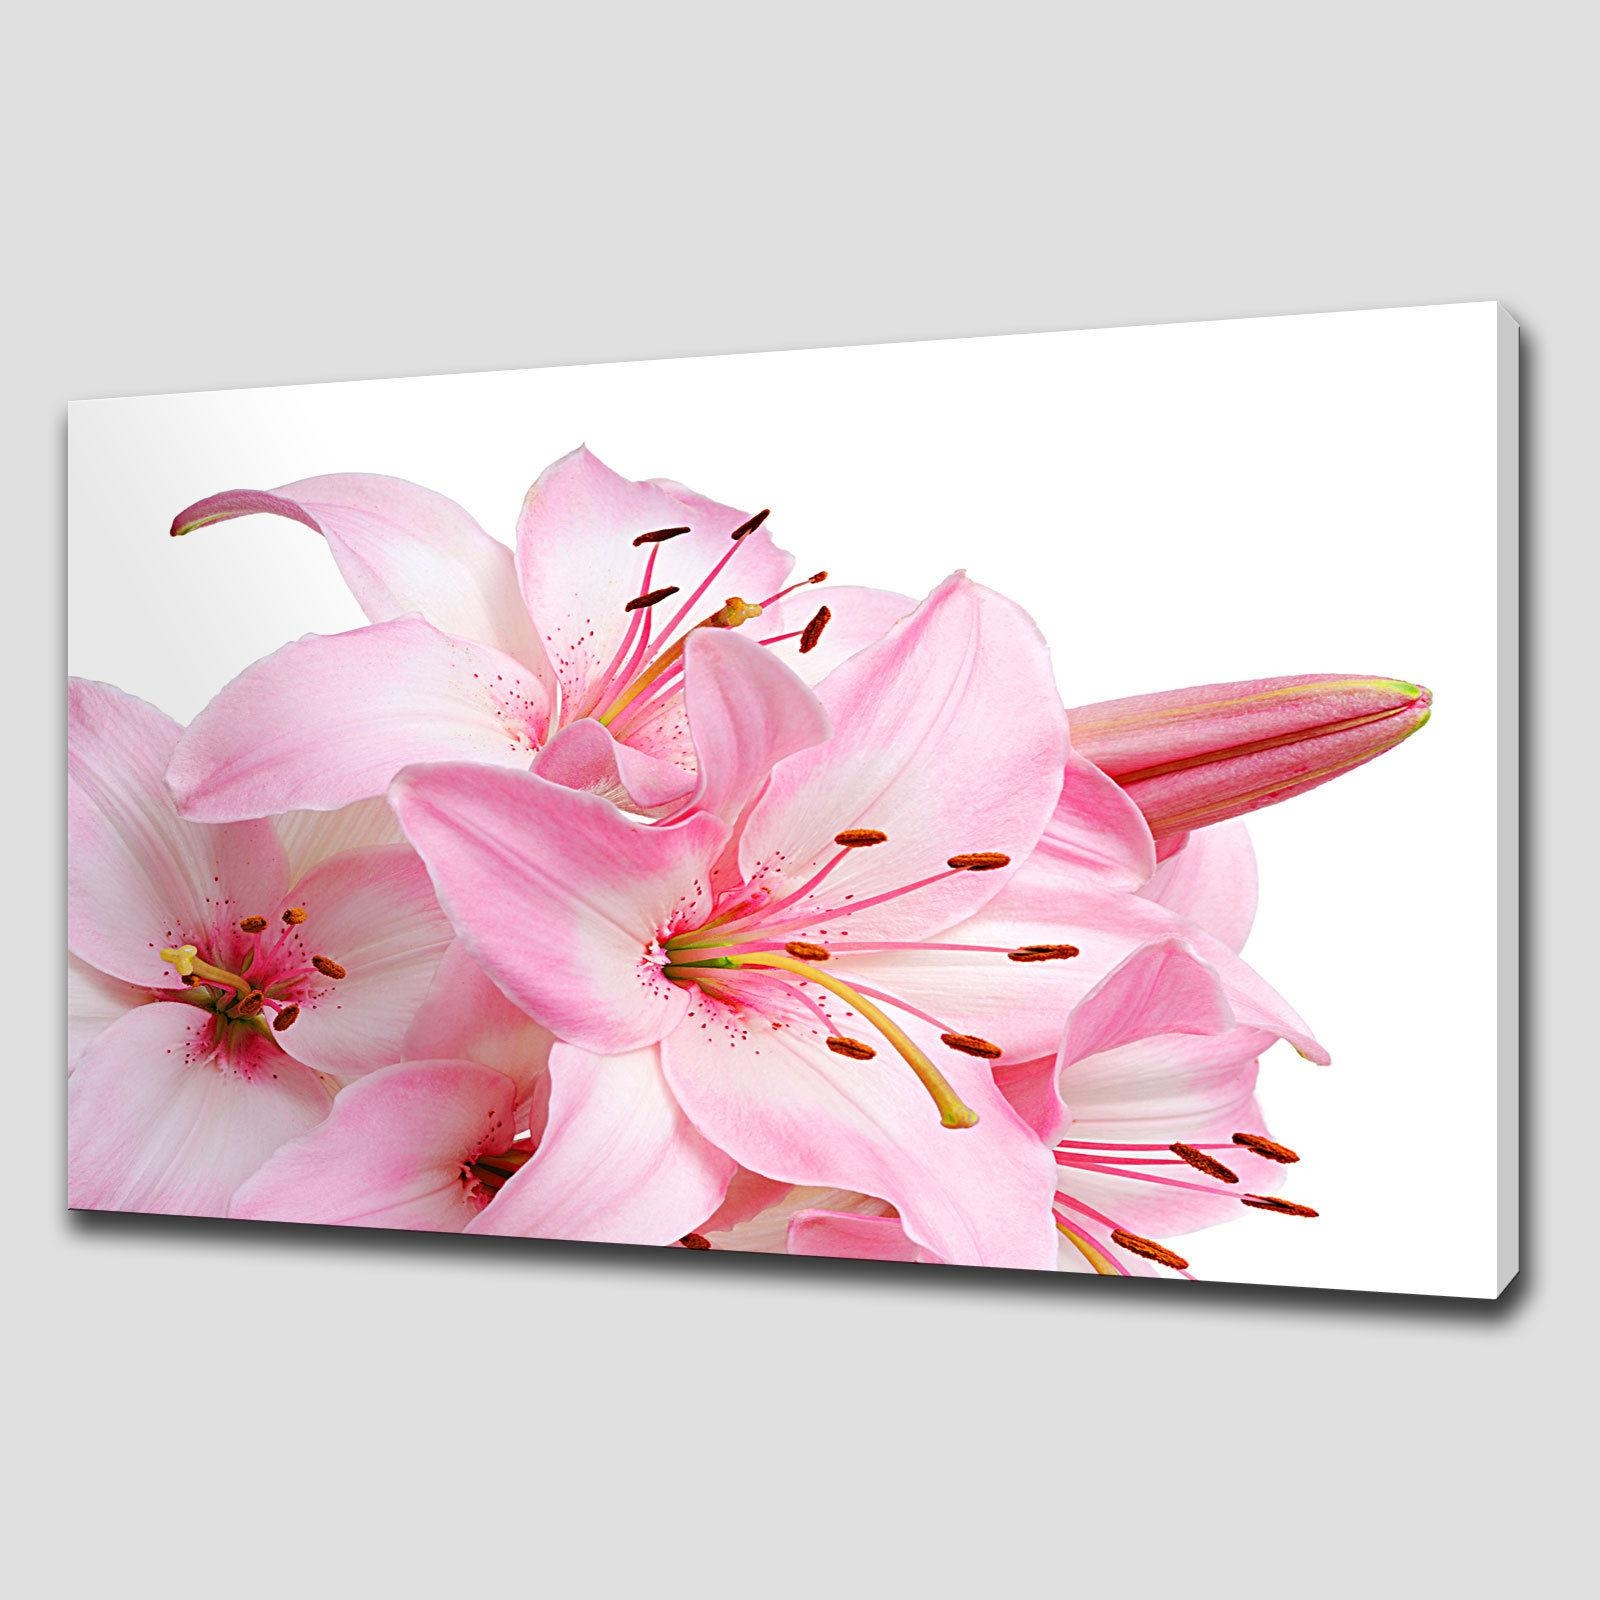 Wall Art Designs: Canvas Floral Wall Art Flowers Paintings Large In Pink Flower Wall Art (View 8 of 20)